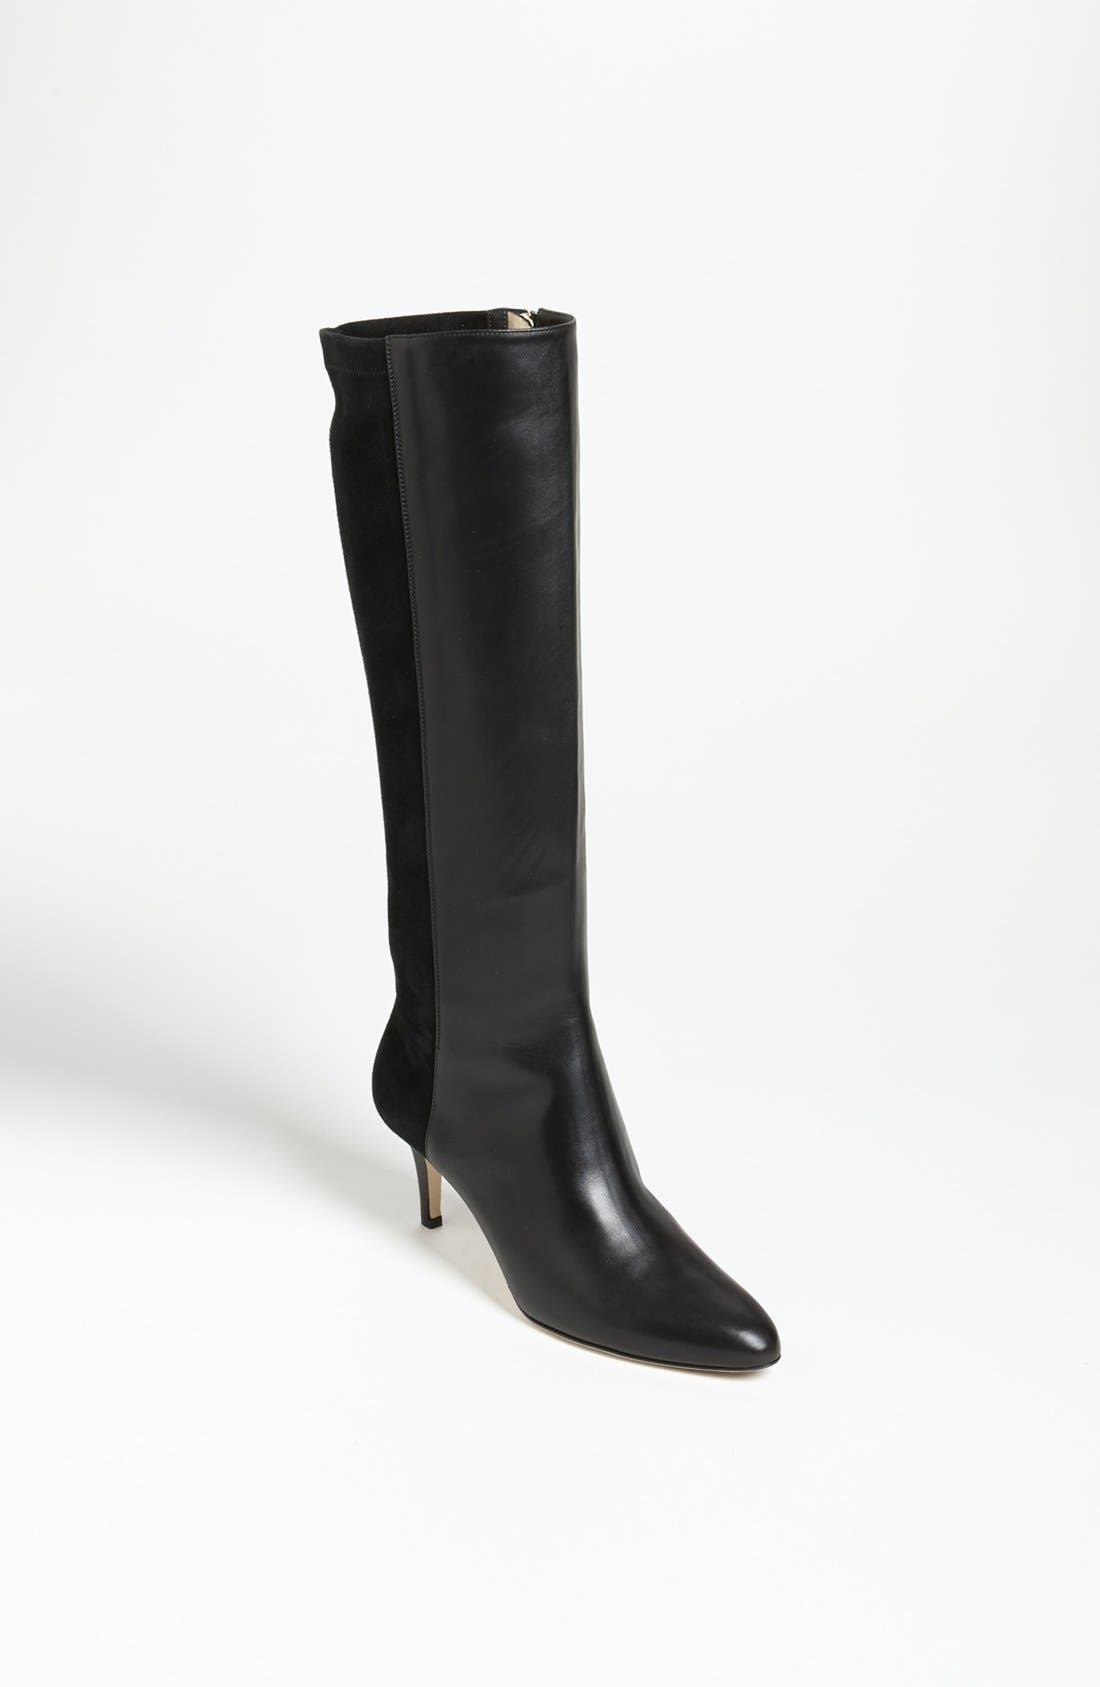 JIMMY CHOO 'Aiden' Boot, Main, color, 001